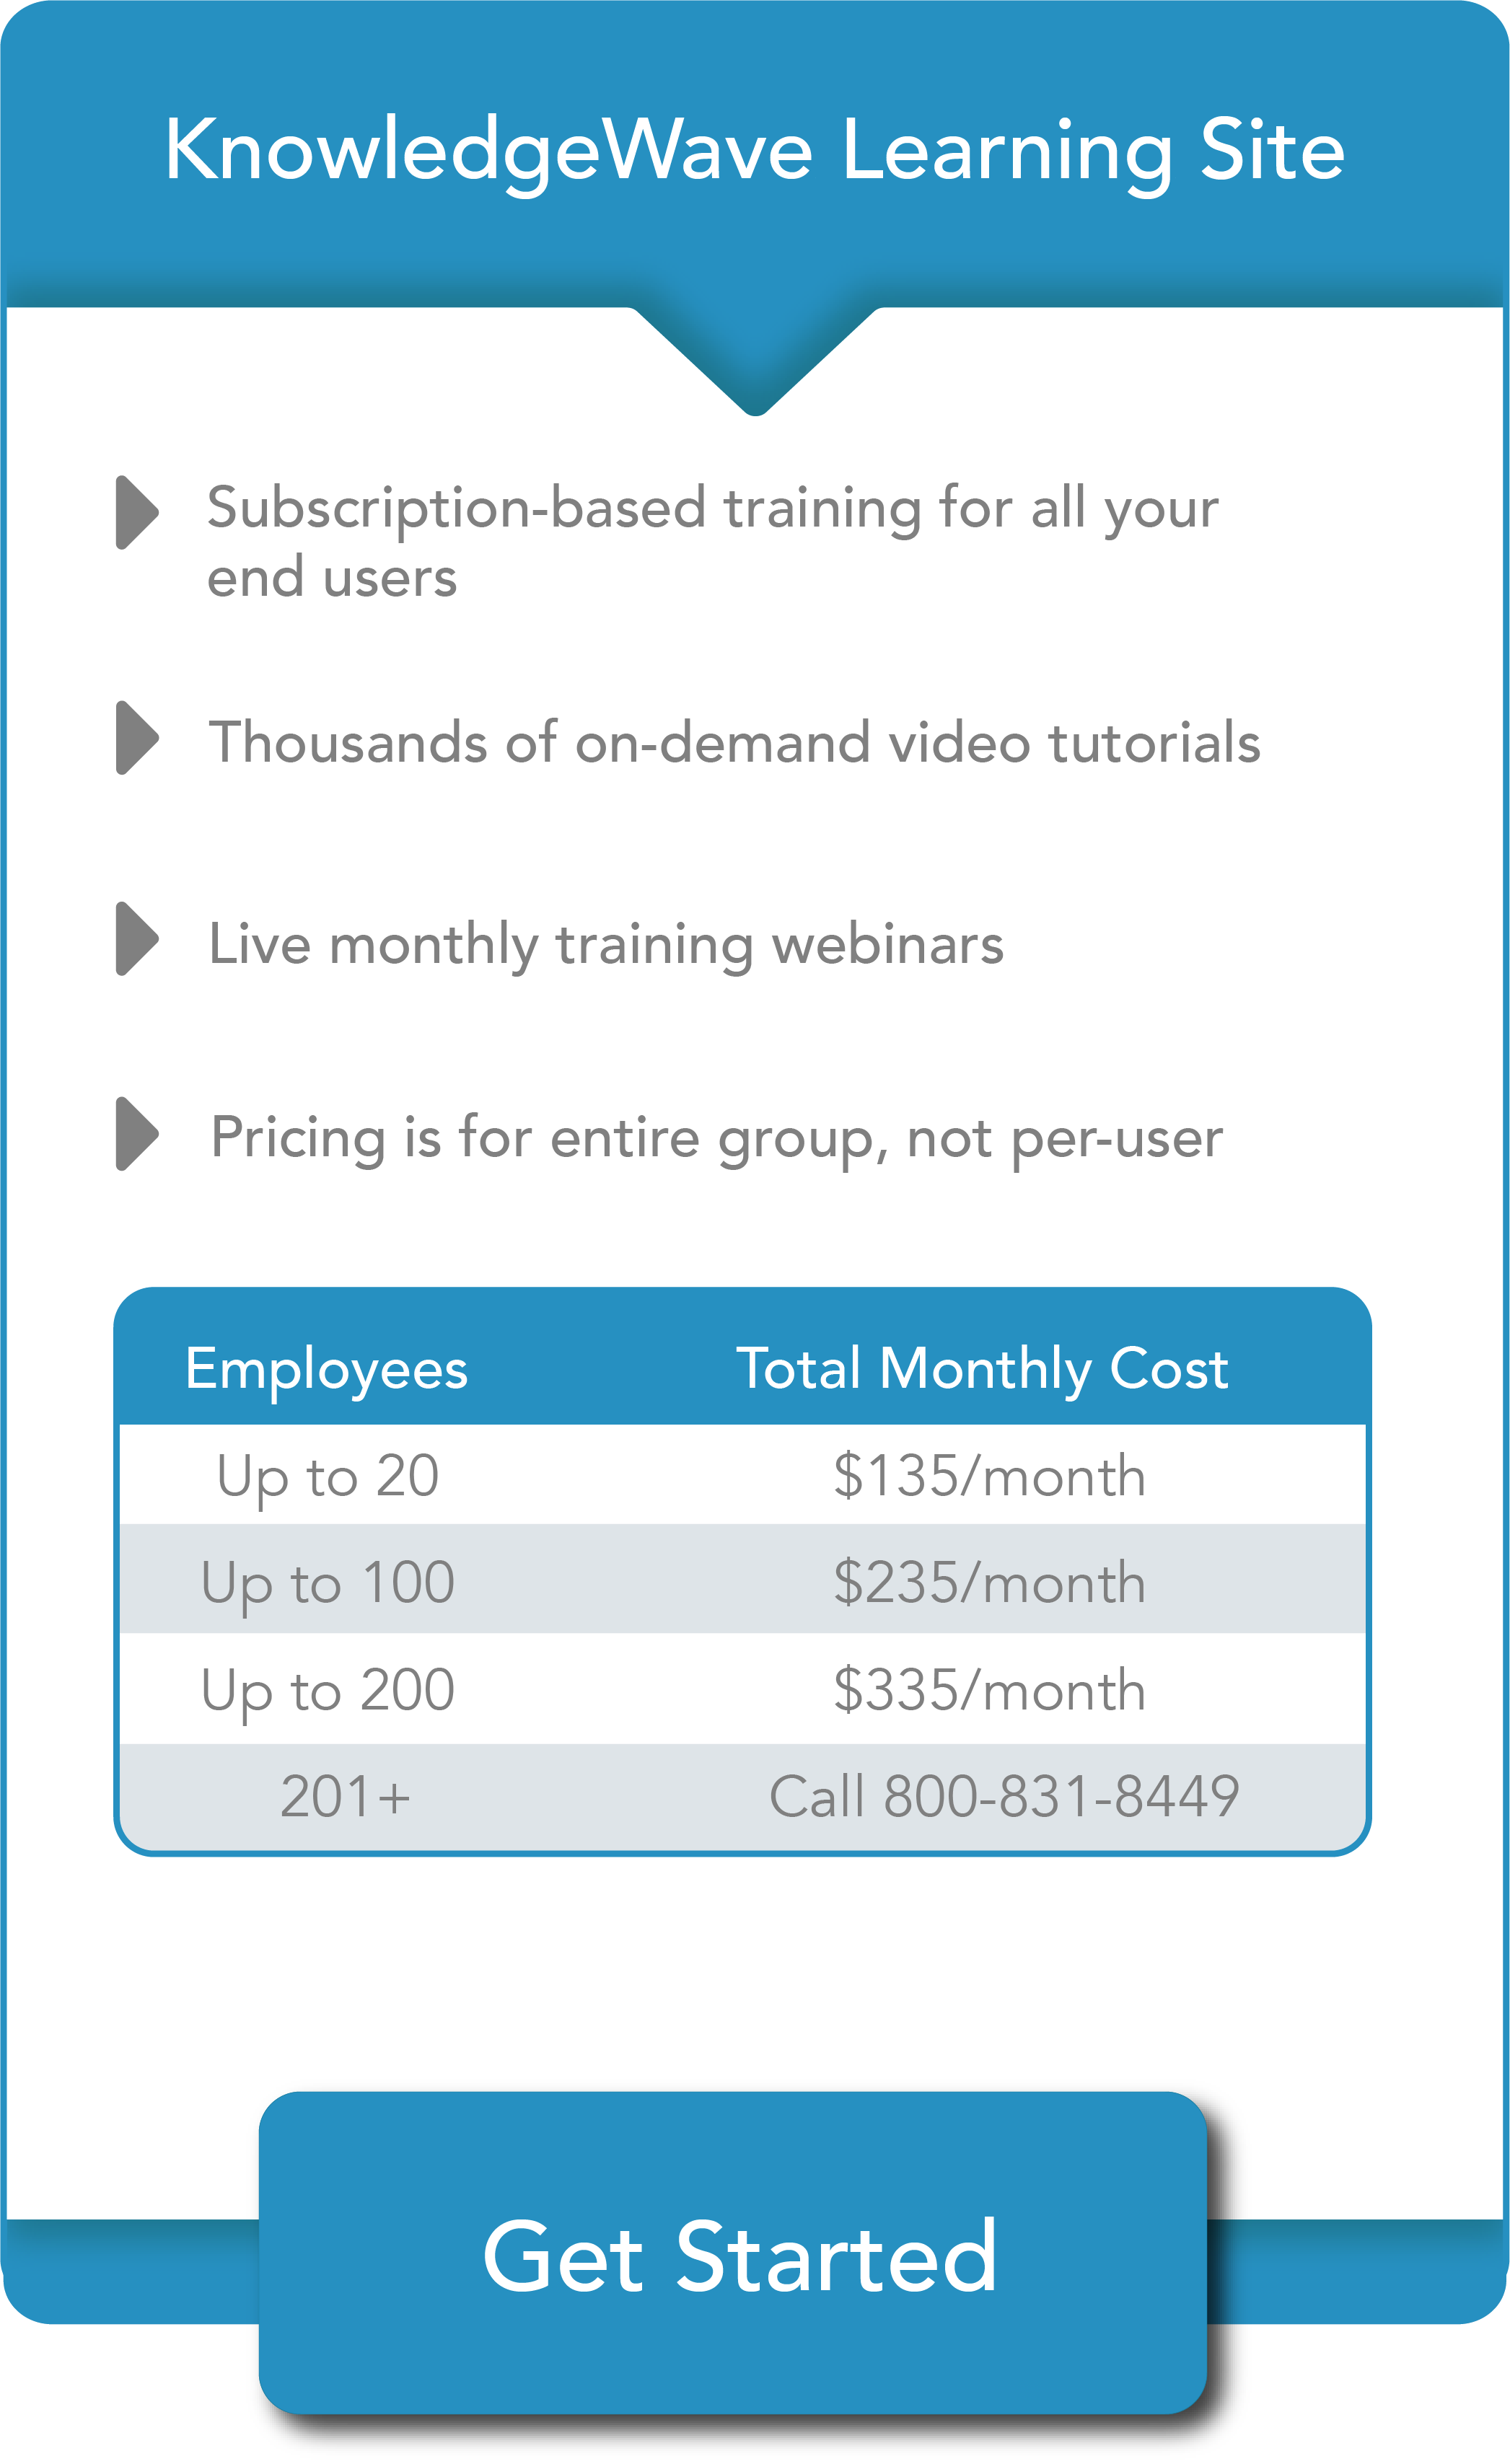 Purchase a KnowledgeWave Learning Site Subscription